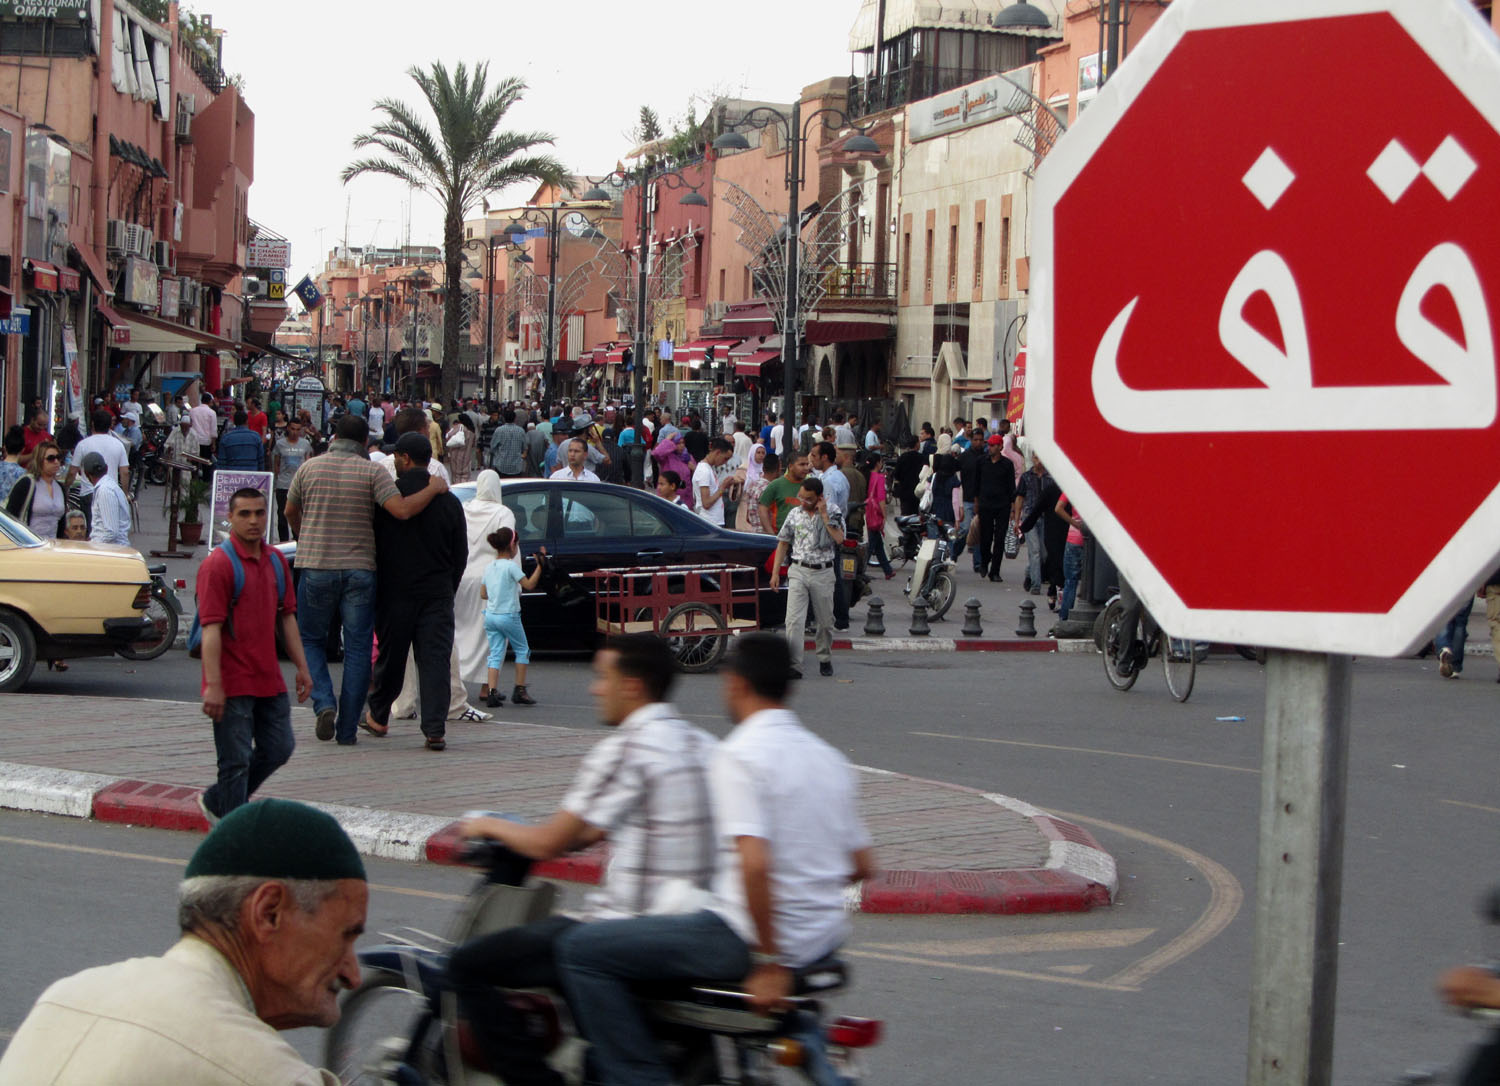 Morocco-Marrakech-Stop-Sign